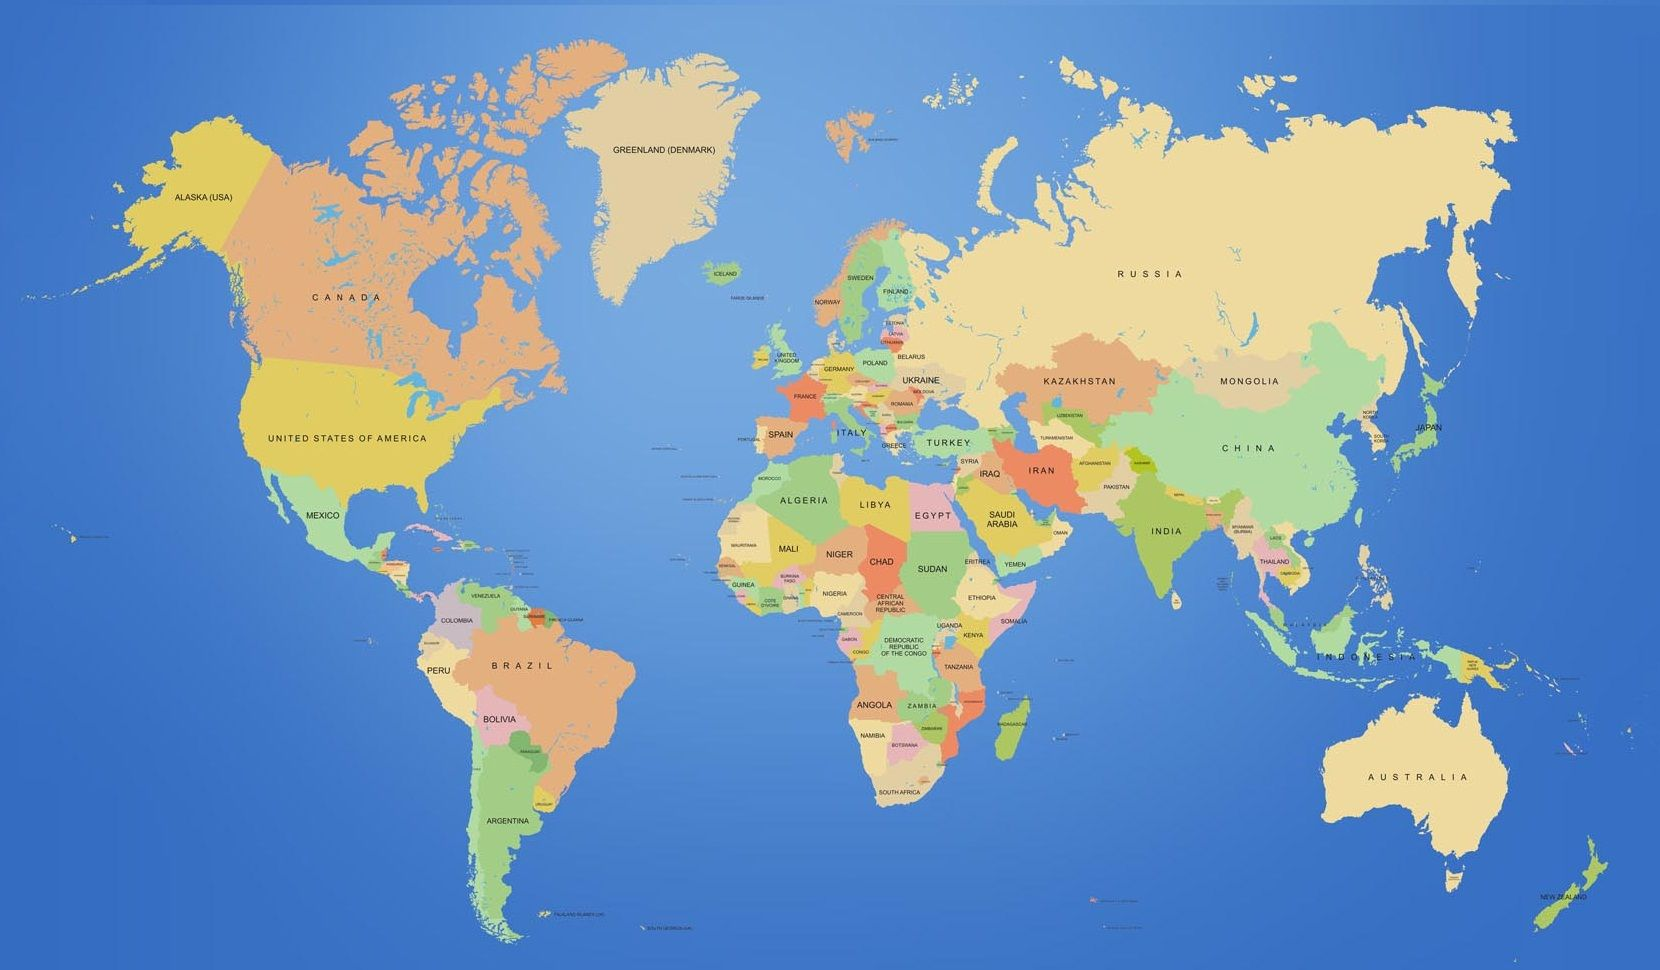 Map Of Europe And Asia With Countries – Map of Europe Asia